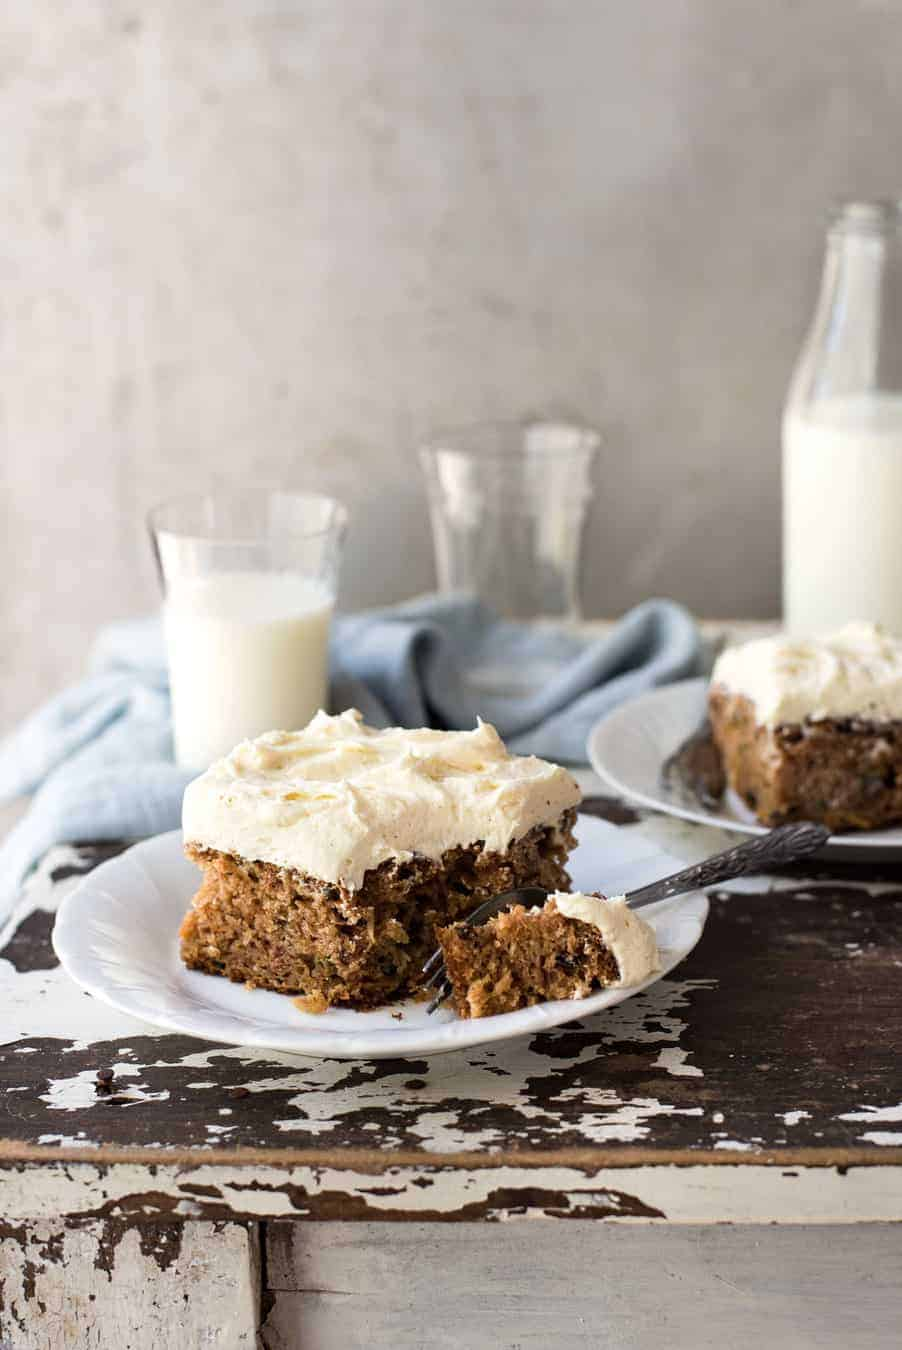 What Temperature Is Carrot Cake Done